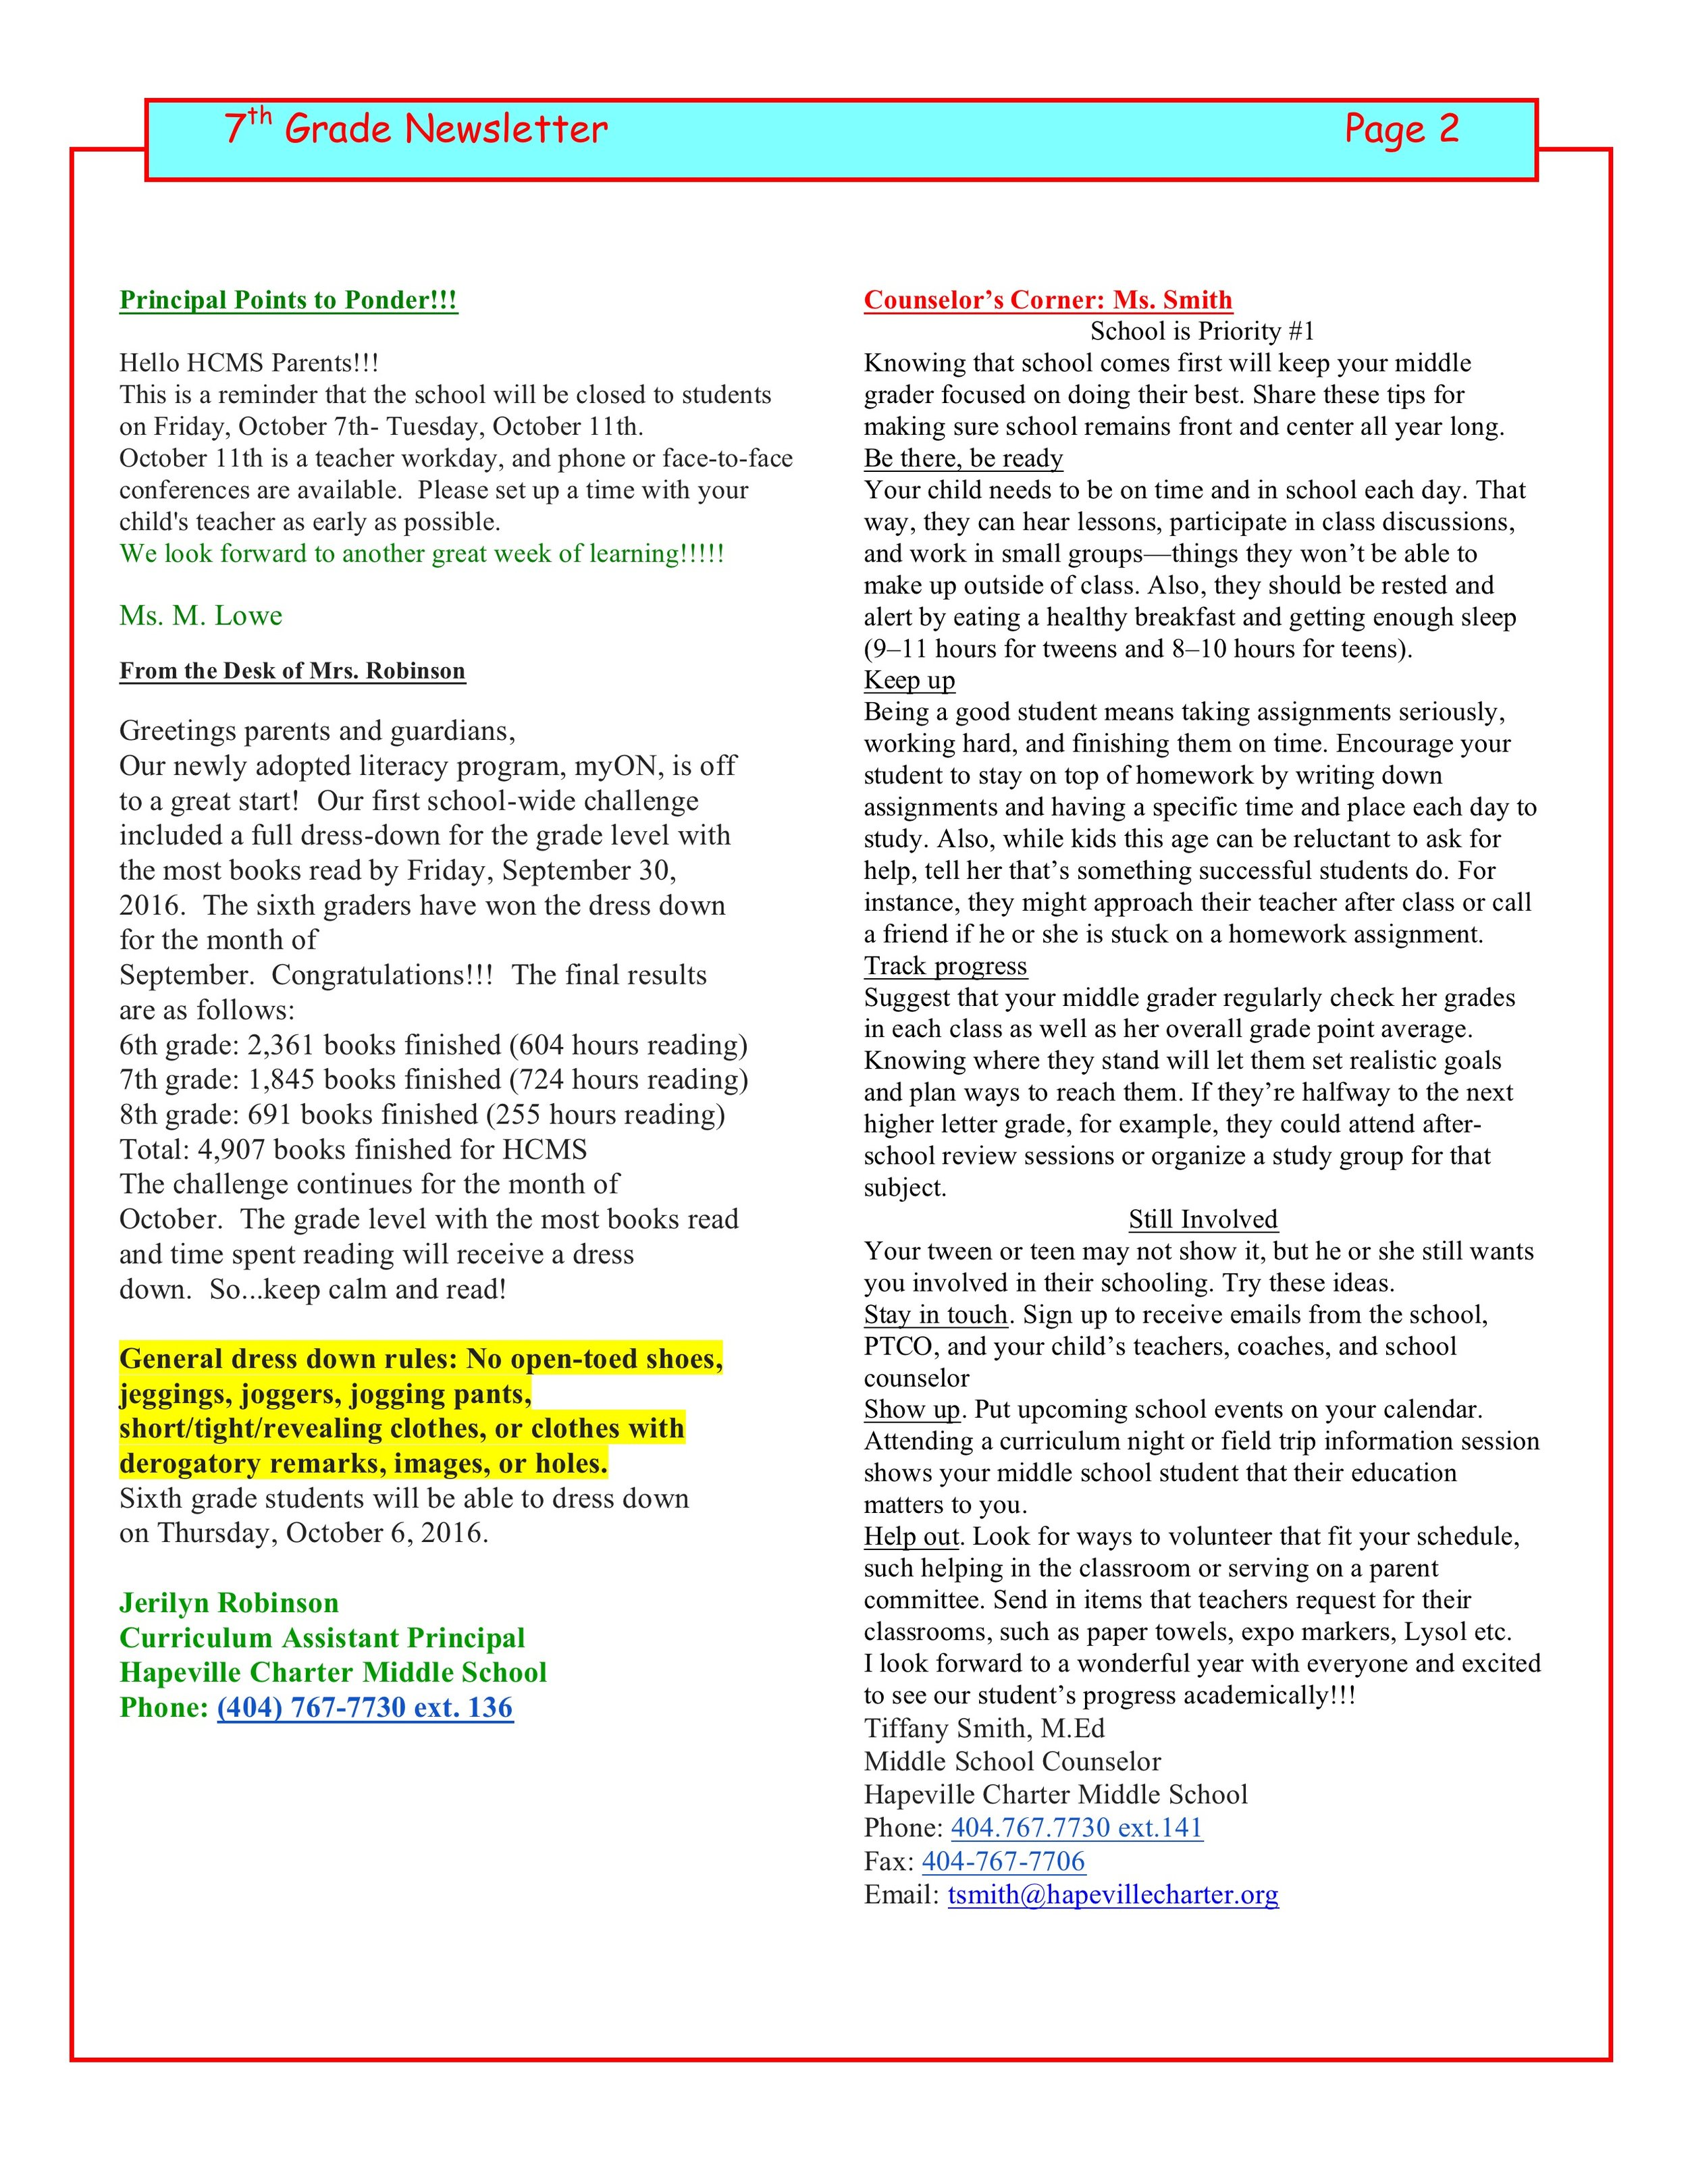 Newsletter Image7th Grade Newsletter 10.3.2016  2.jpeg